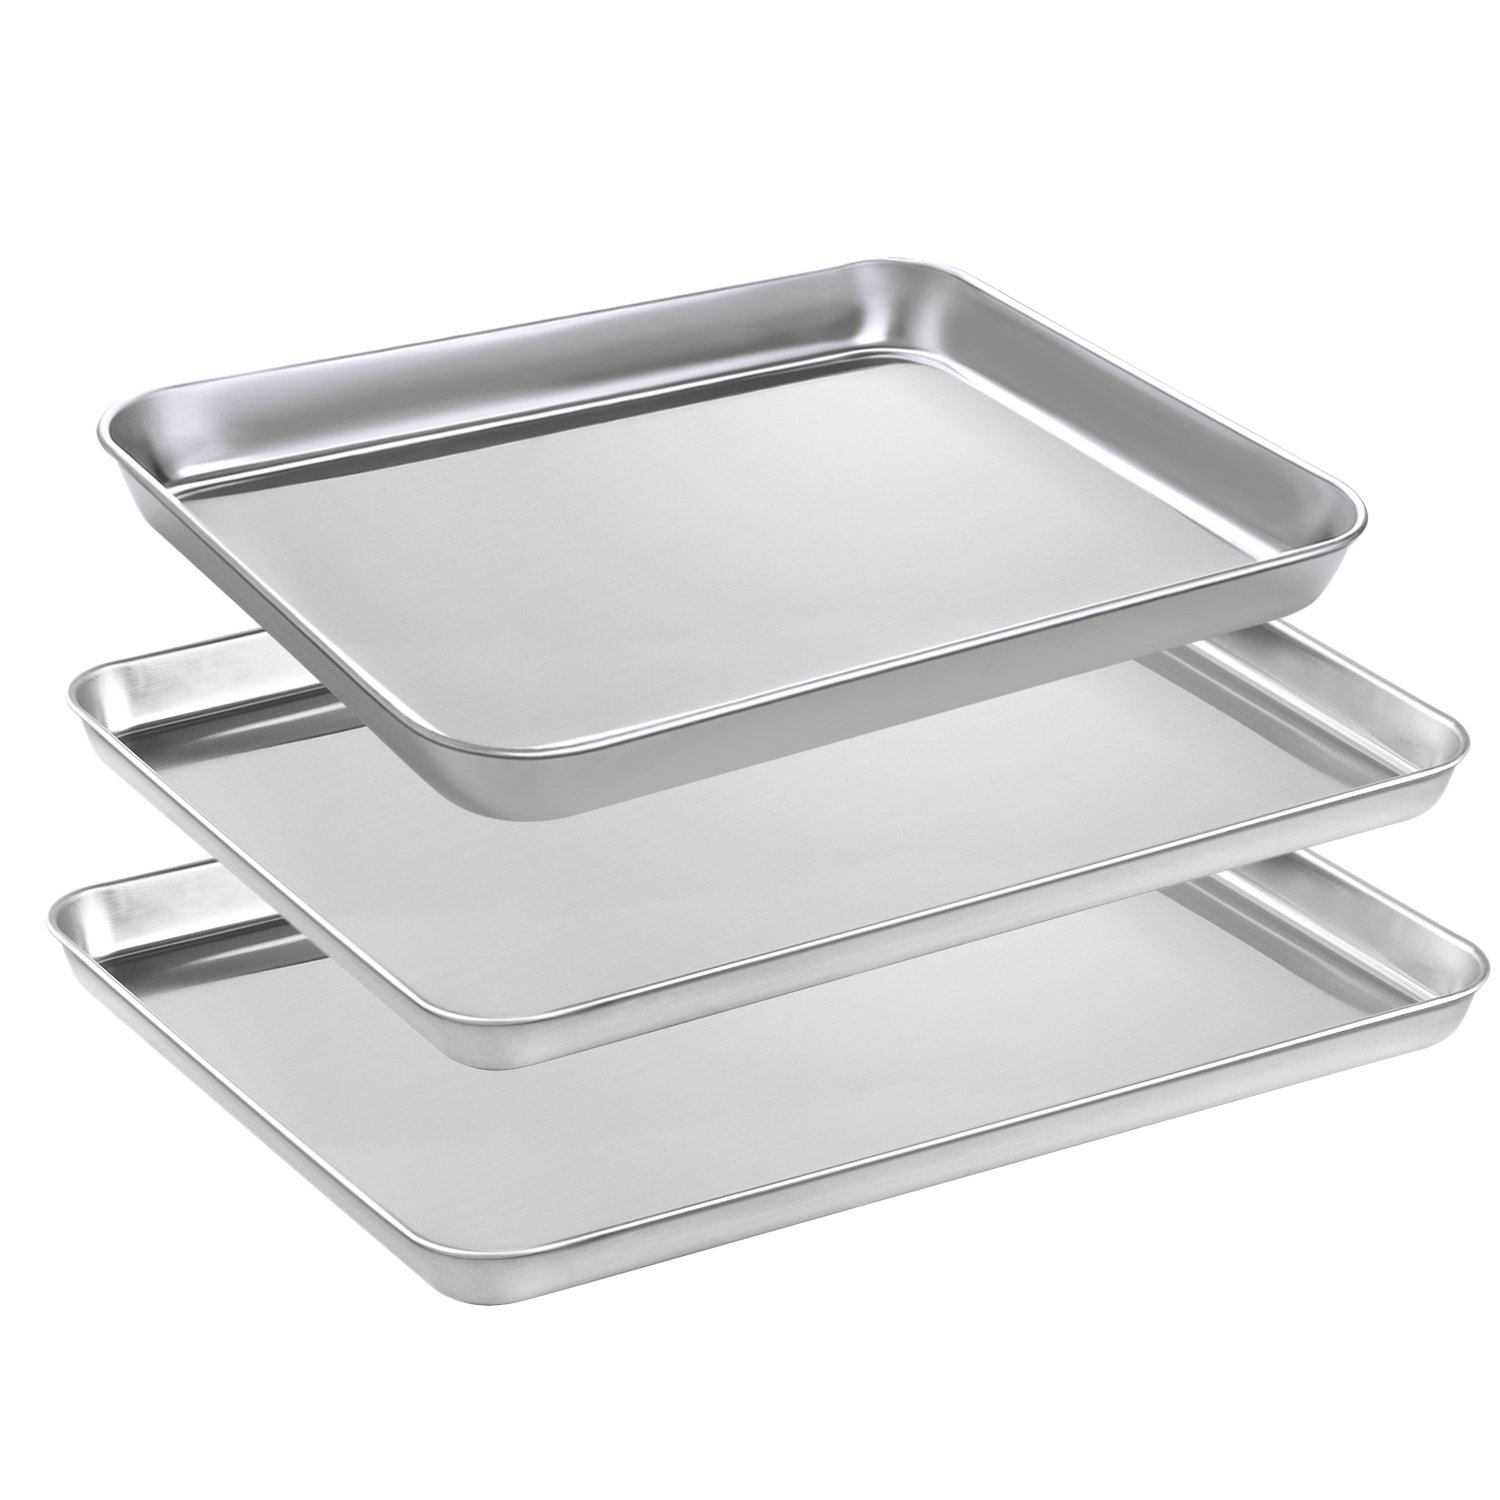 Baking Sheets Set, HEAHYSI Stainless Steel Cookie Sheets & Large Baking Pans for Oven, Non Toxic & Healthy,Superior Mirror Finish & Easy Clean, Dishwasher Safe by HEAHYSI